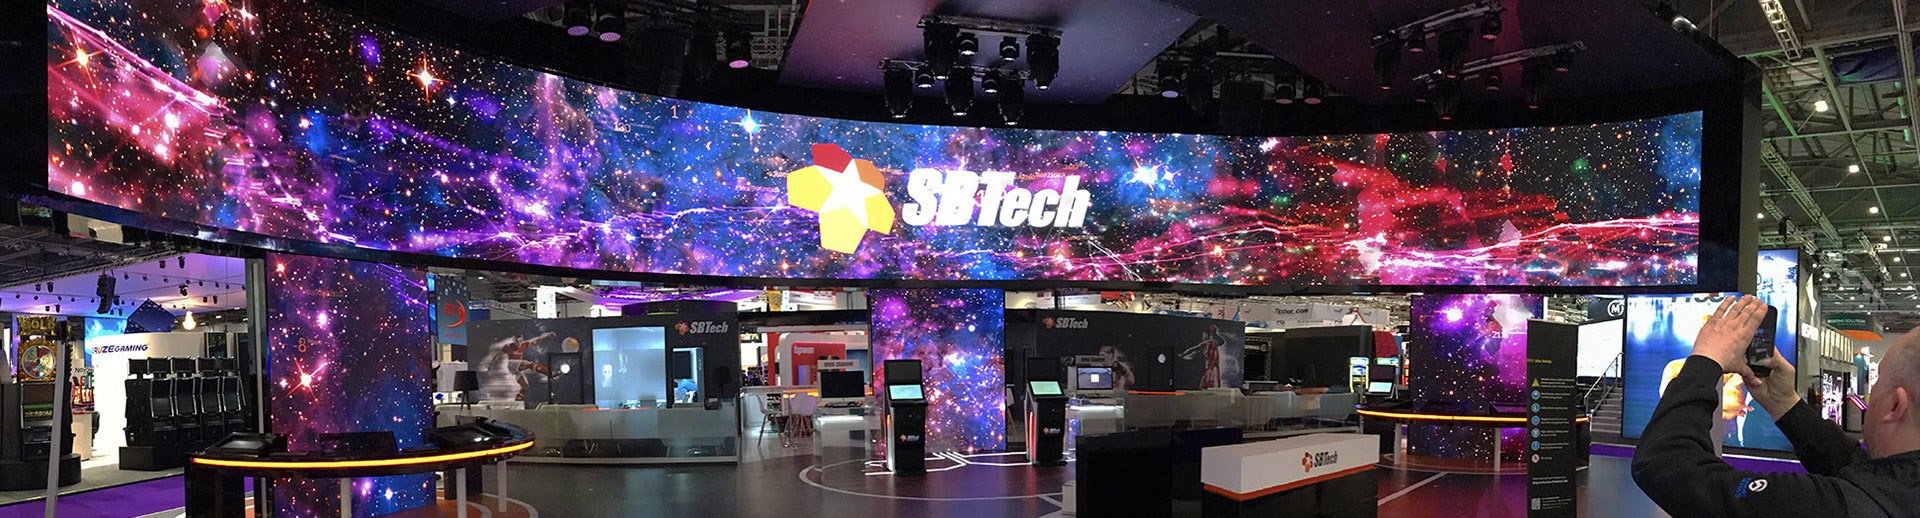 AV and LED Screens Hire for ICE 2018 at ExCeL, London